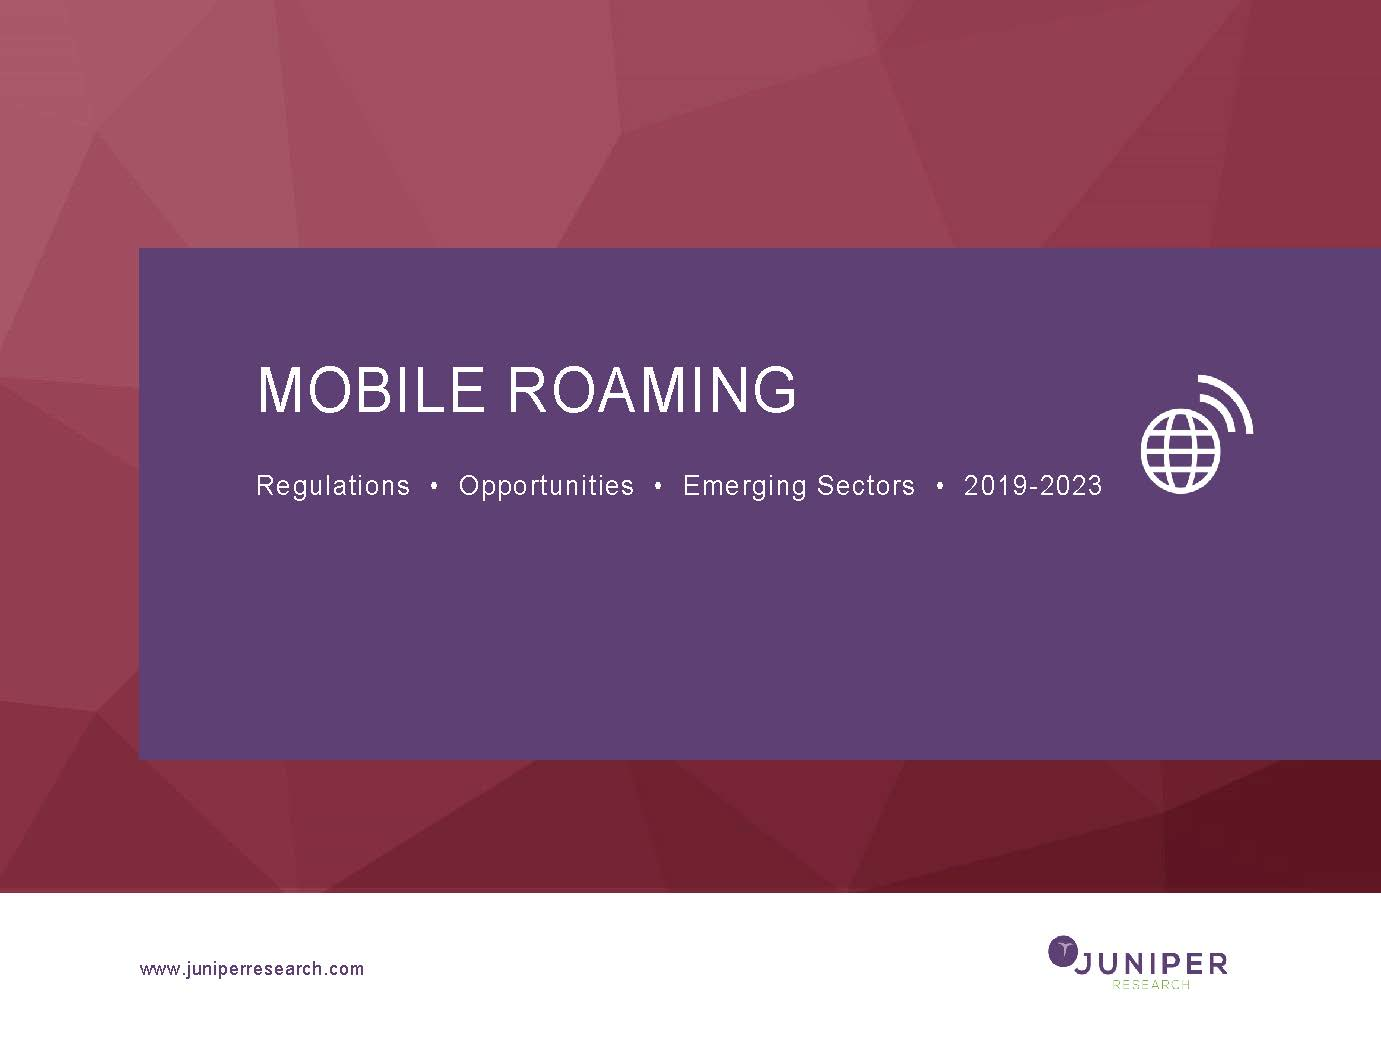 Mobile Roaming: Regulations, Opportunities & Emerging Sectors 2019-2023